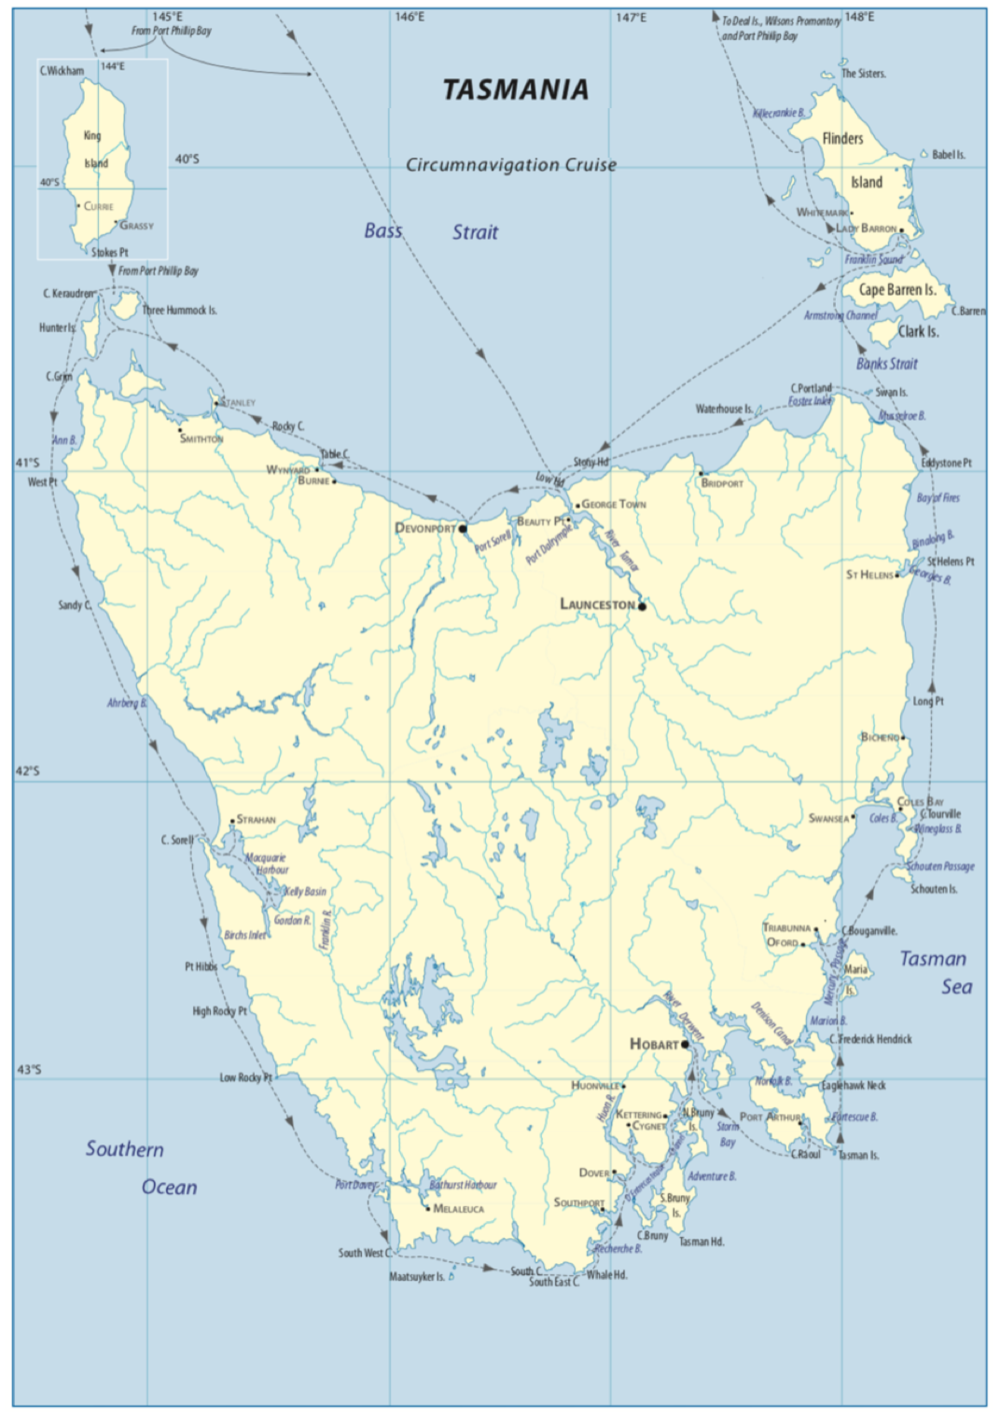 The 800nm anti-clockwise circumnavigation route around Tasmania, starting and finishing in the capital city of Hobart.